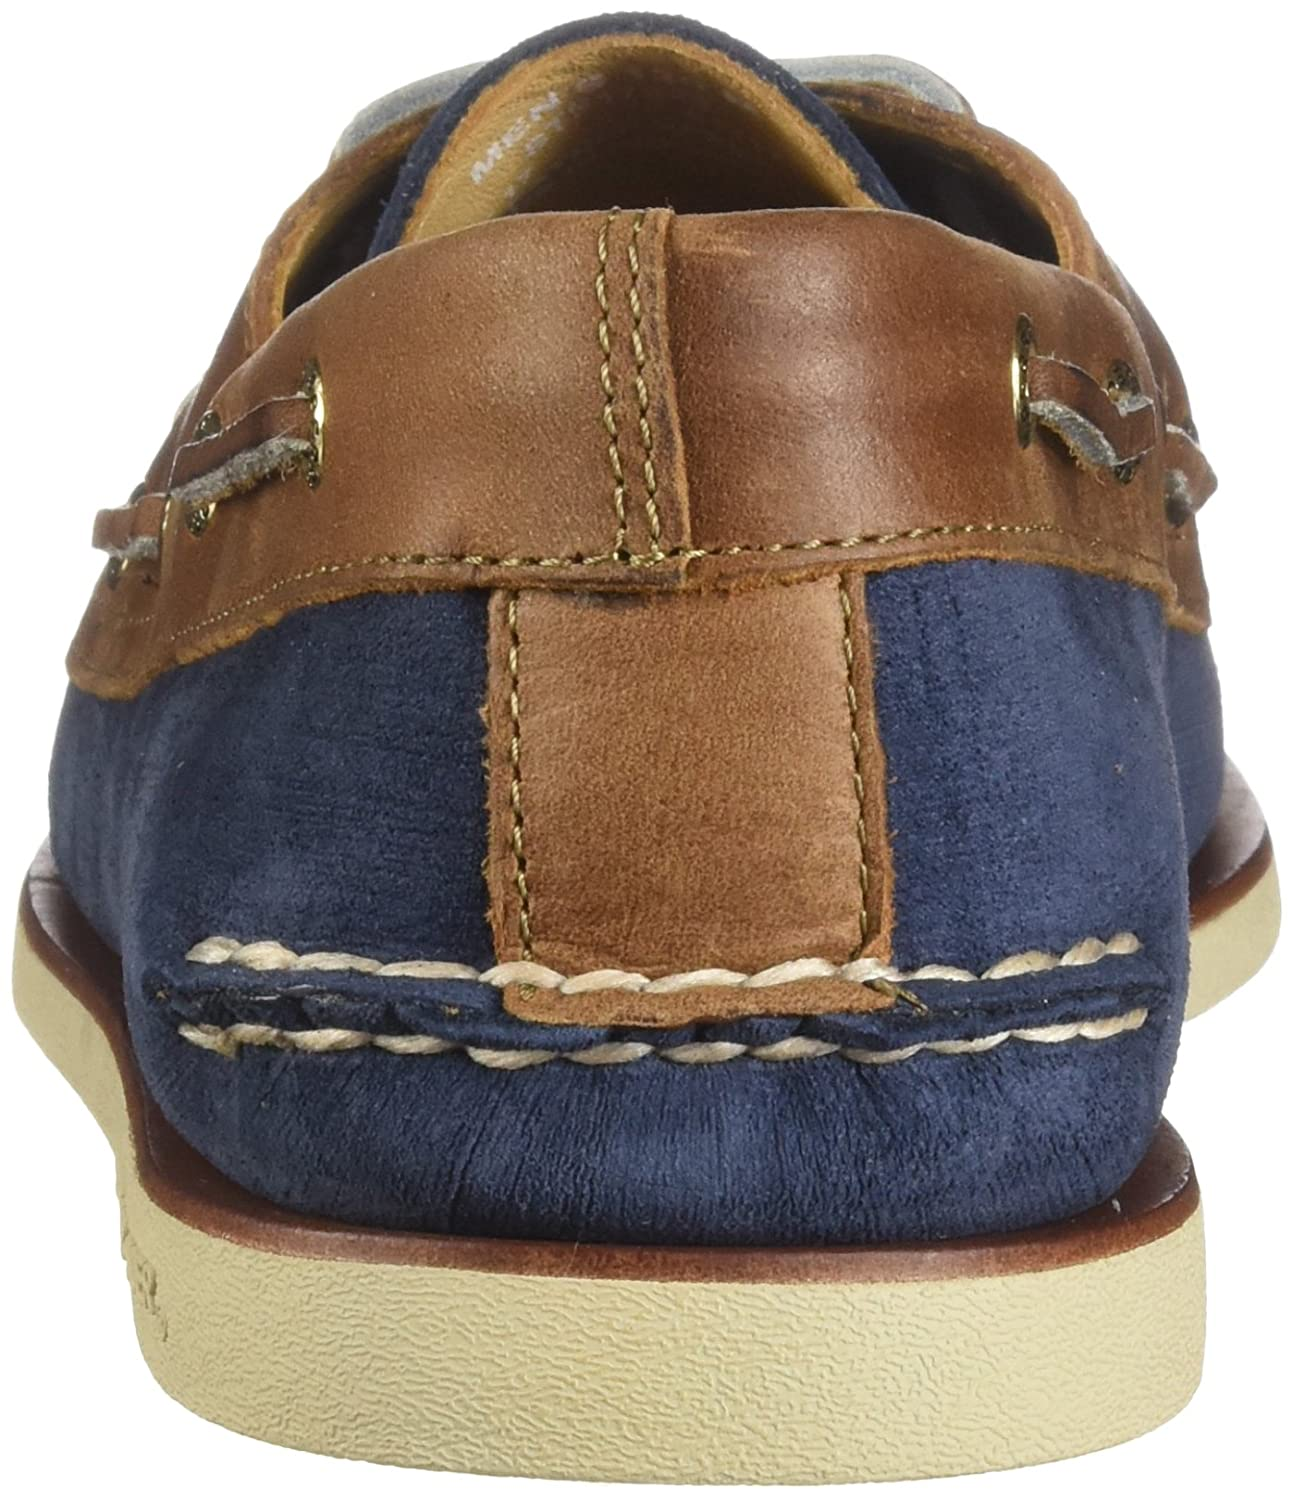 Sperry Top-Sider Gold Cup Authentic Authentic Authentic Original Boat schuhe B071X4YCH4  1078f1